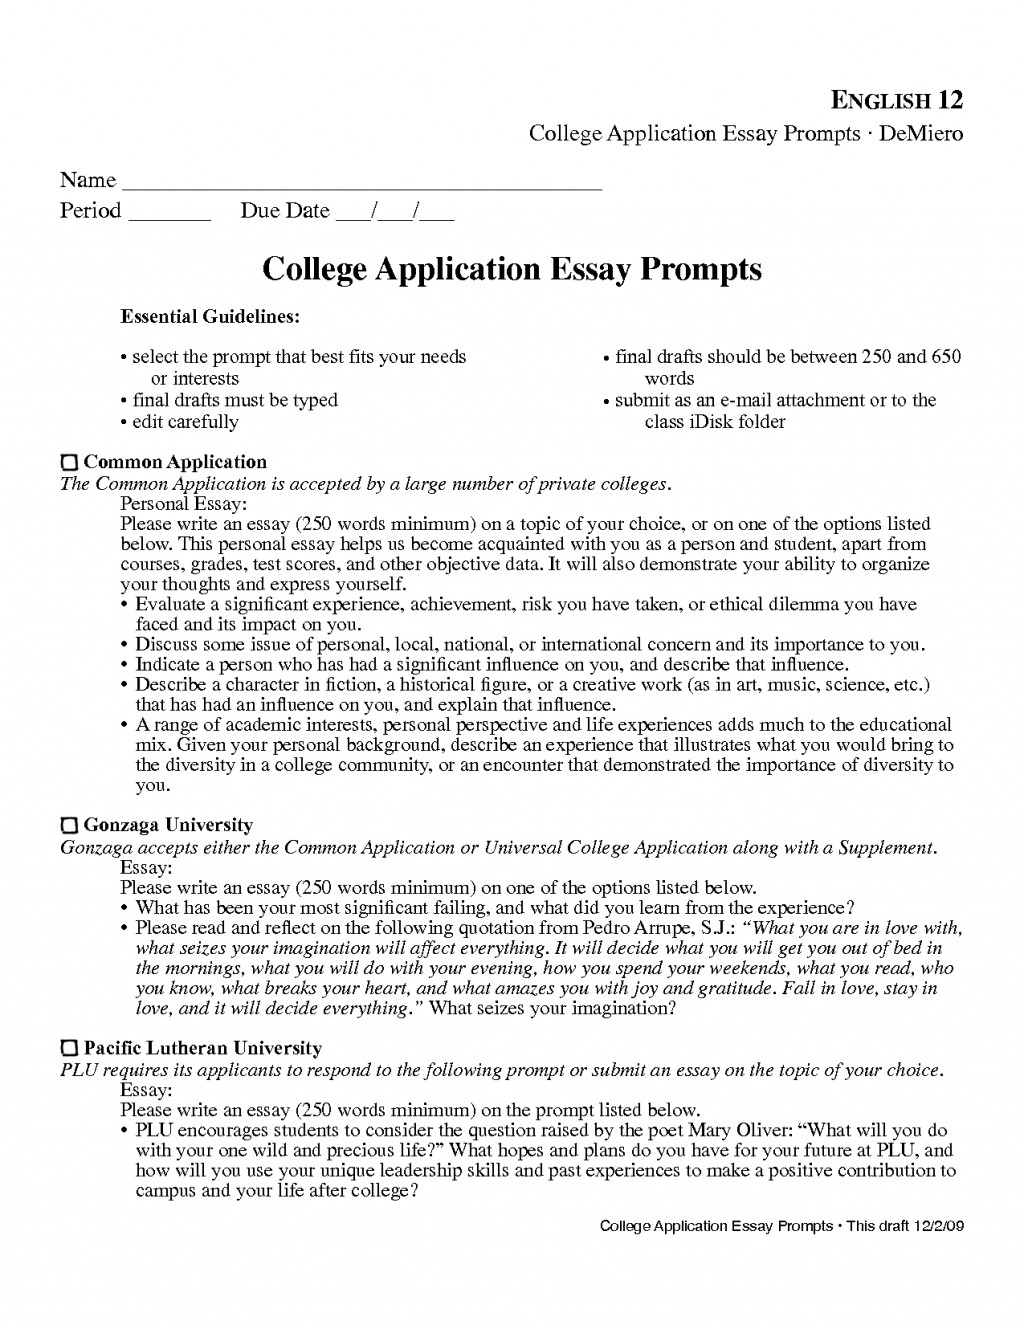 004 Essay Prompt Example When Do The Common App Prompts Come Out Poemsrom Co Writing Examples For Middle School College Format Printables Corner In Applic 4th Grade 3rd Uc High Fascinating Generator Fiction Ideas Large